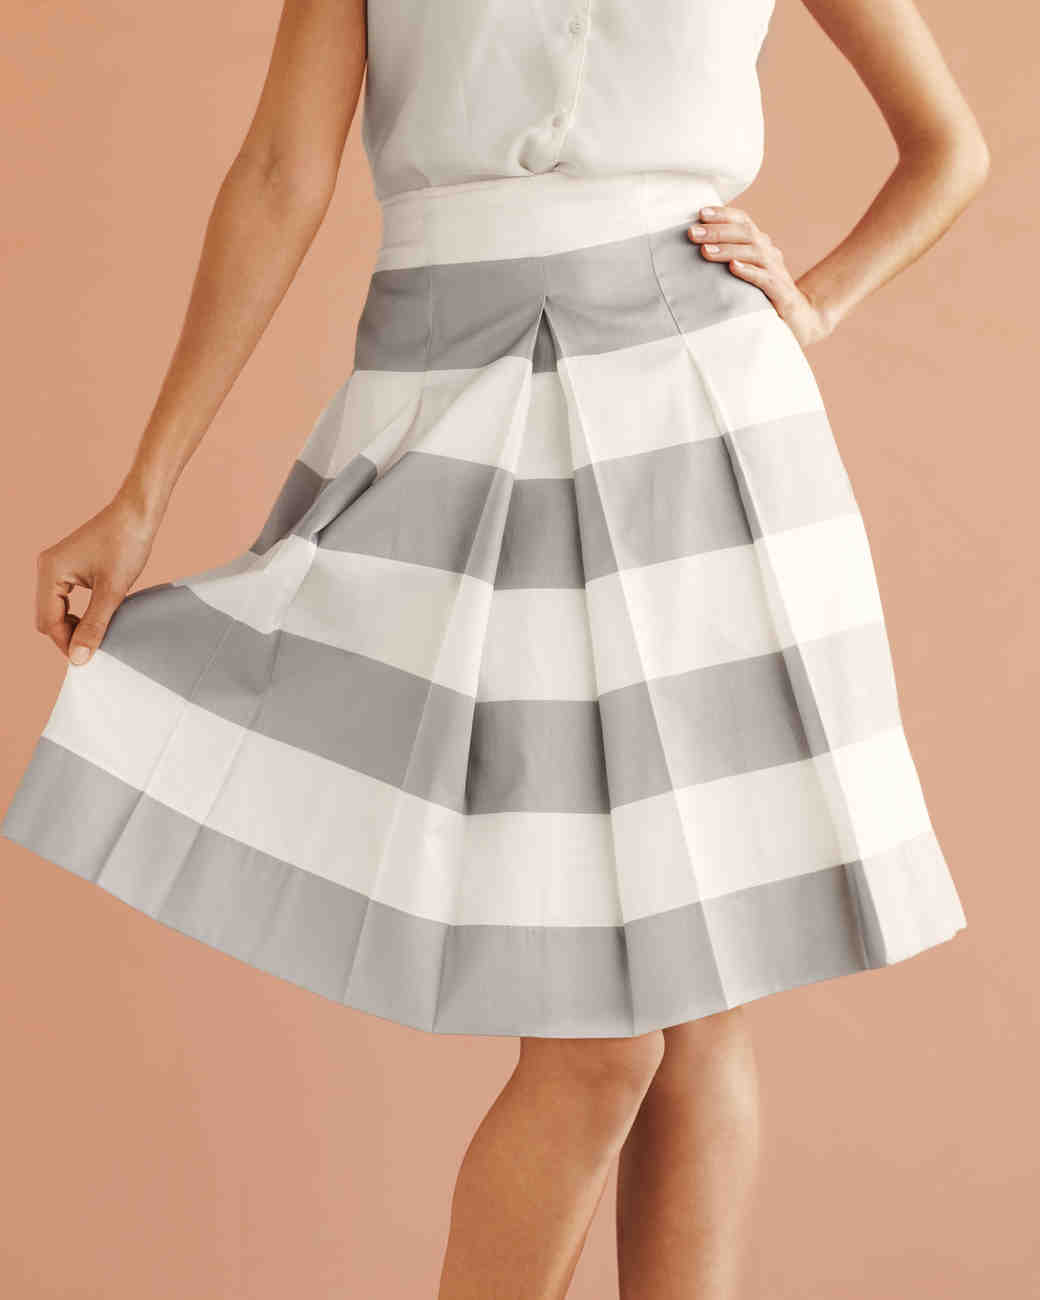 stripes-skirt-mwd108186.jpg